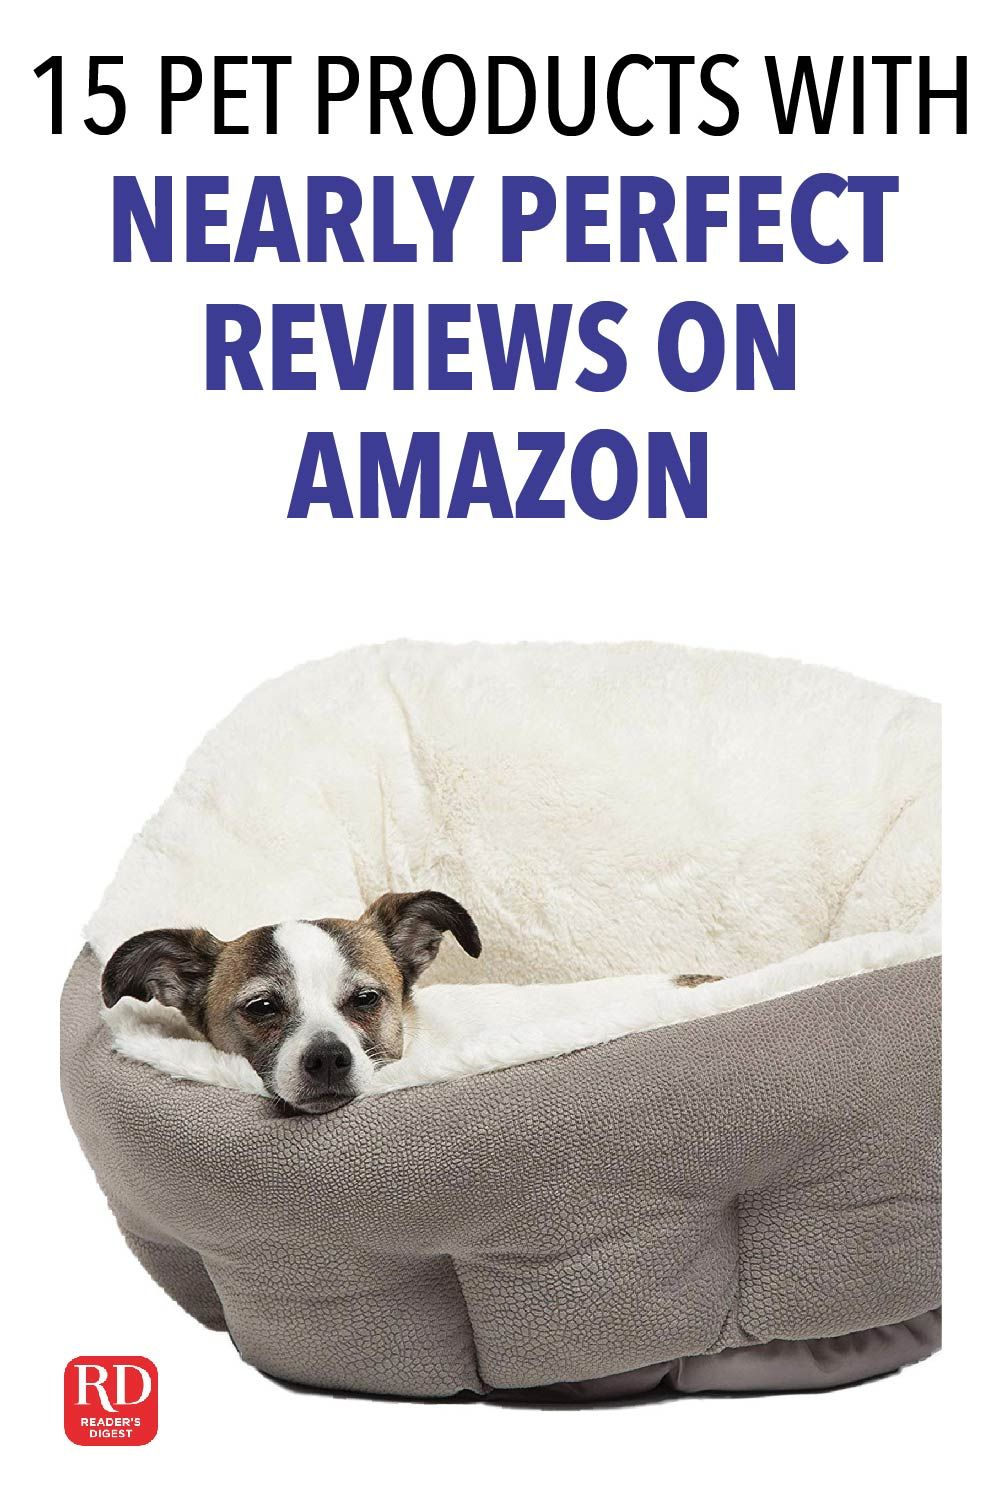 15 Pet Products With Nearly Perfect Reviews On Amazon Pets Organic Dog Treats Funny Cats Dogs